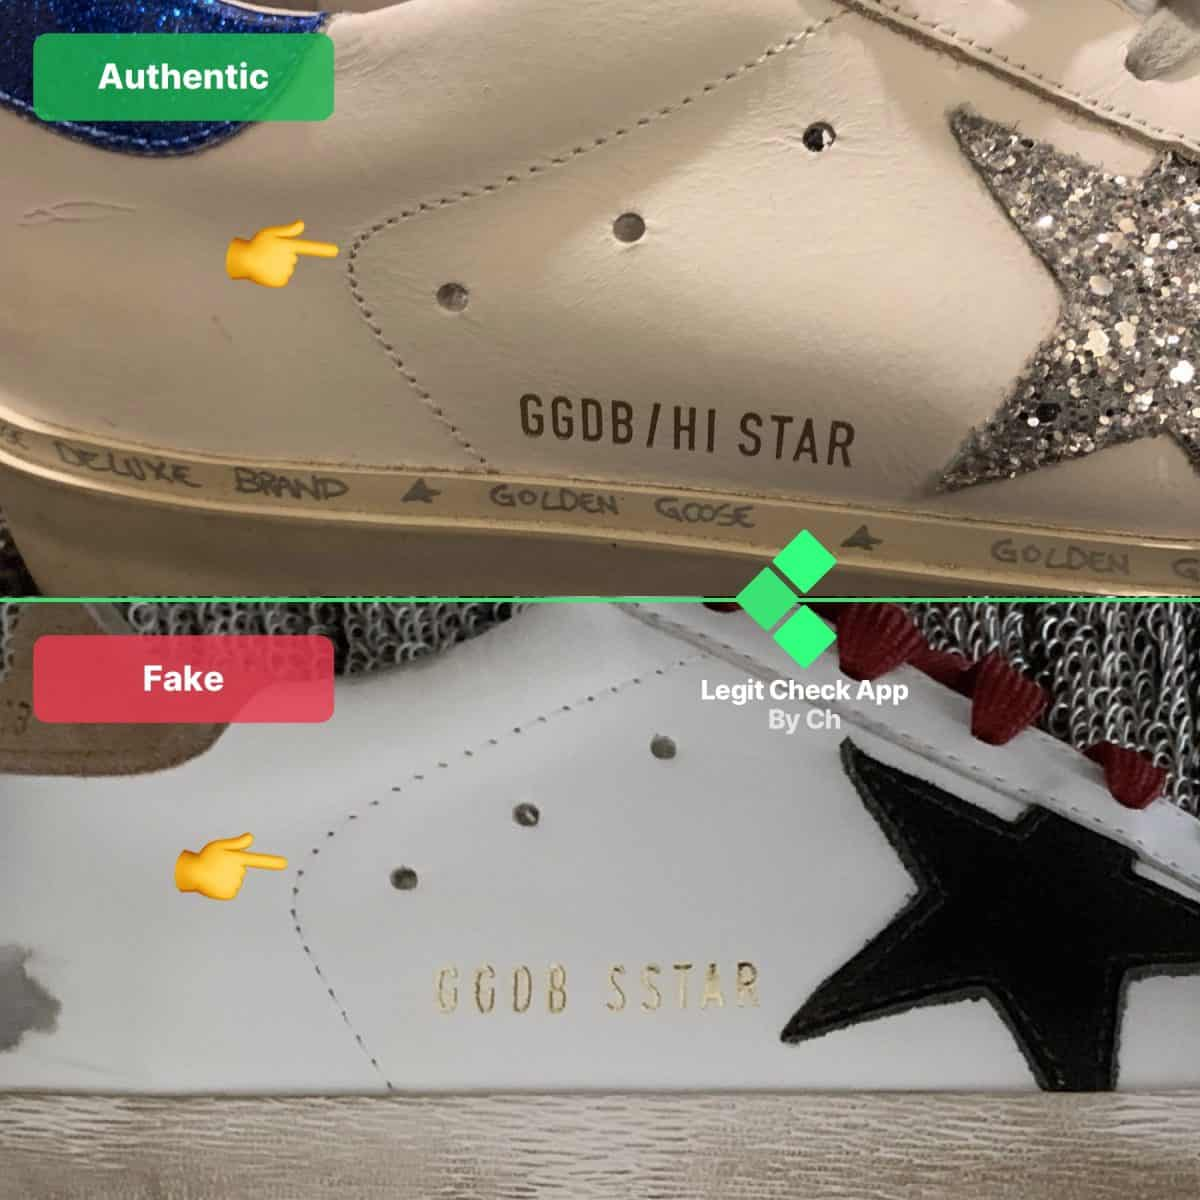 Golden Goose Real vs Fake